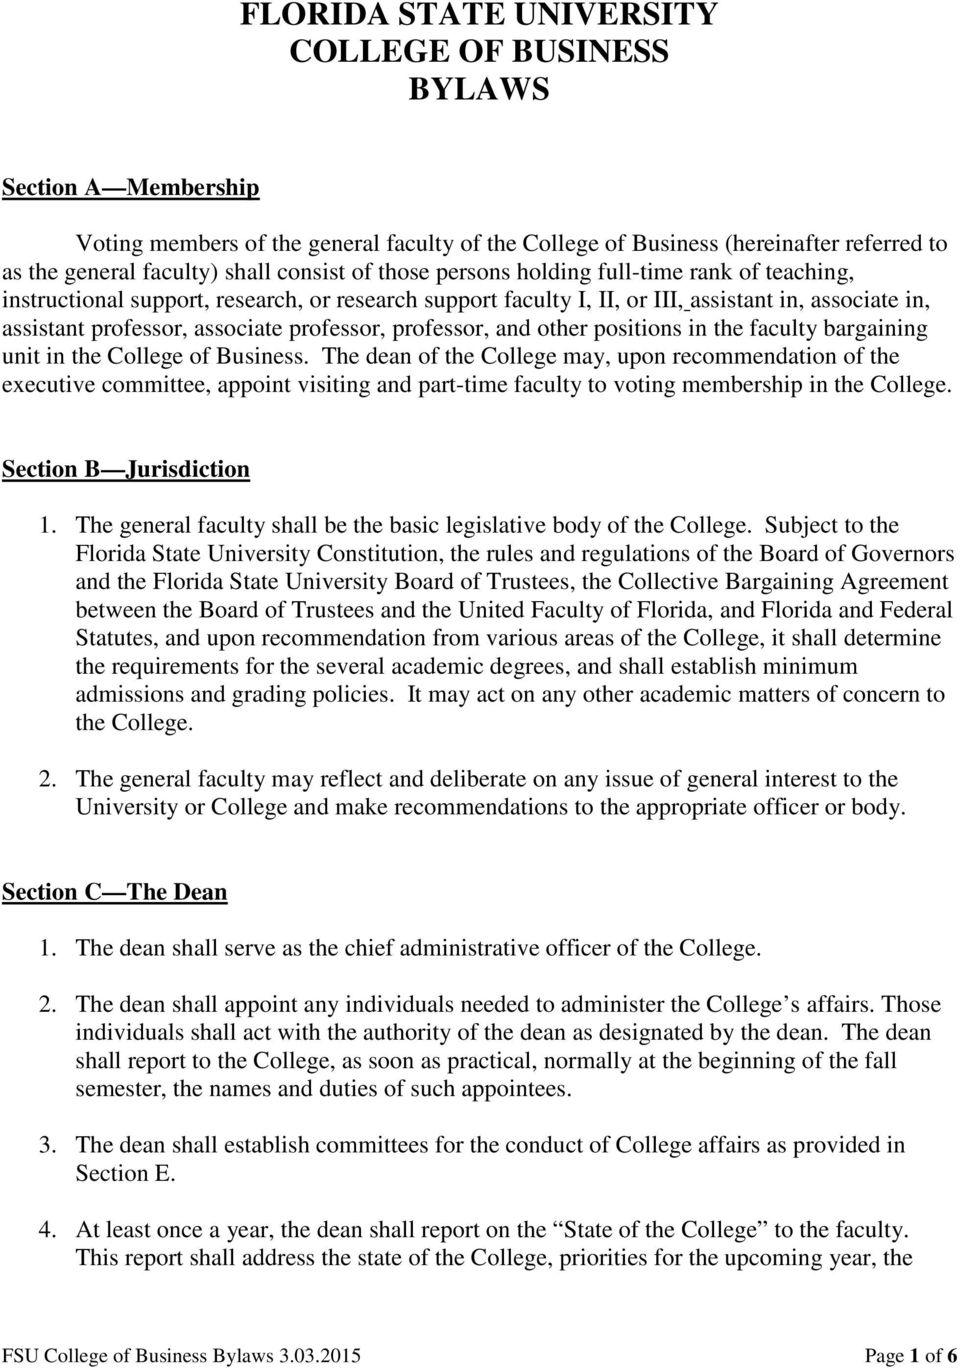 professor, professor, and other positions in the faculty bargaining unit in the College of Business.